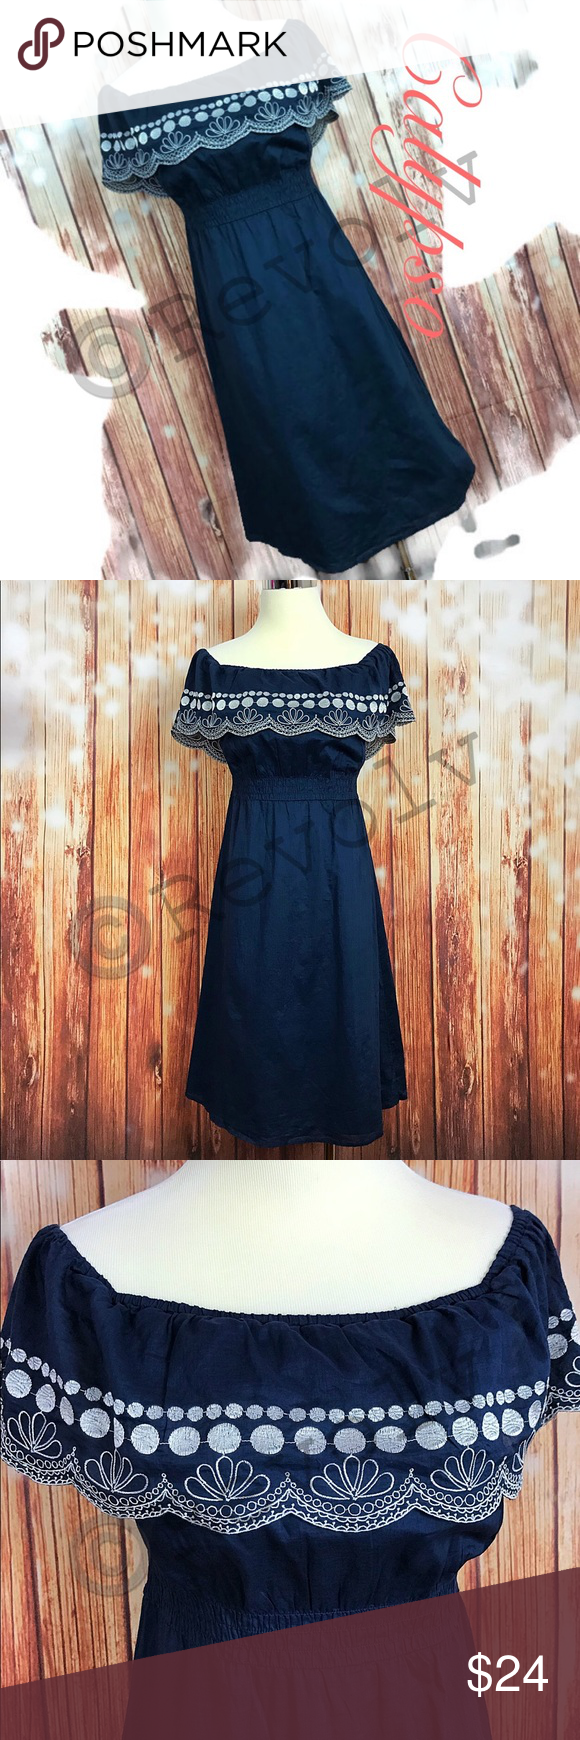 Calypso For Target Off The Shoulder Blue Dress In Great Condition Comes From A Smoke Free Home Gorgeous Blue With With Wh Clothes Design Dresses Blue Dresses [ 1740 x 580 Pixel ]